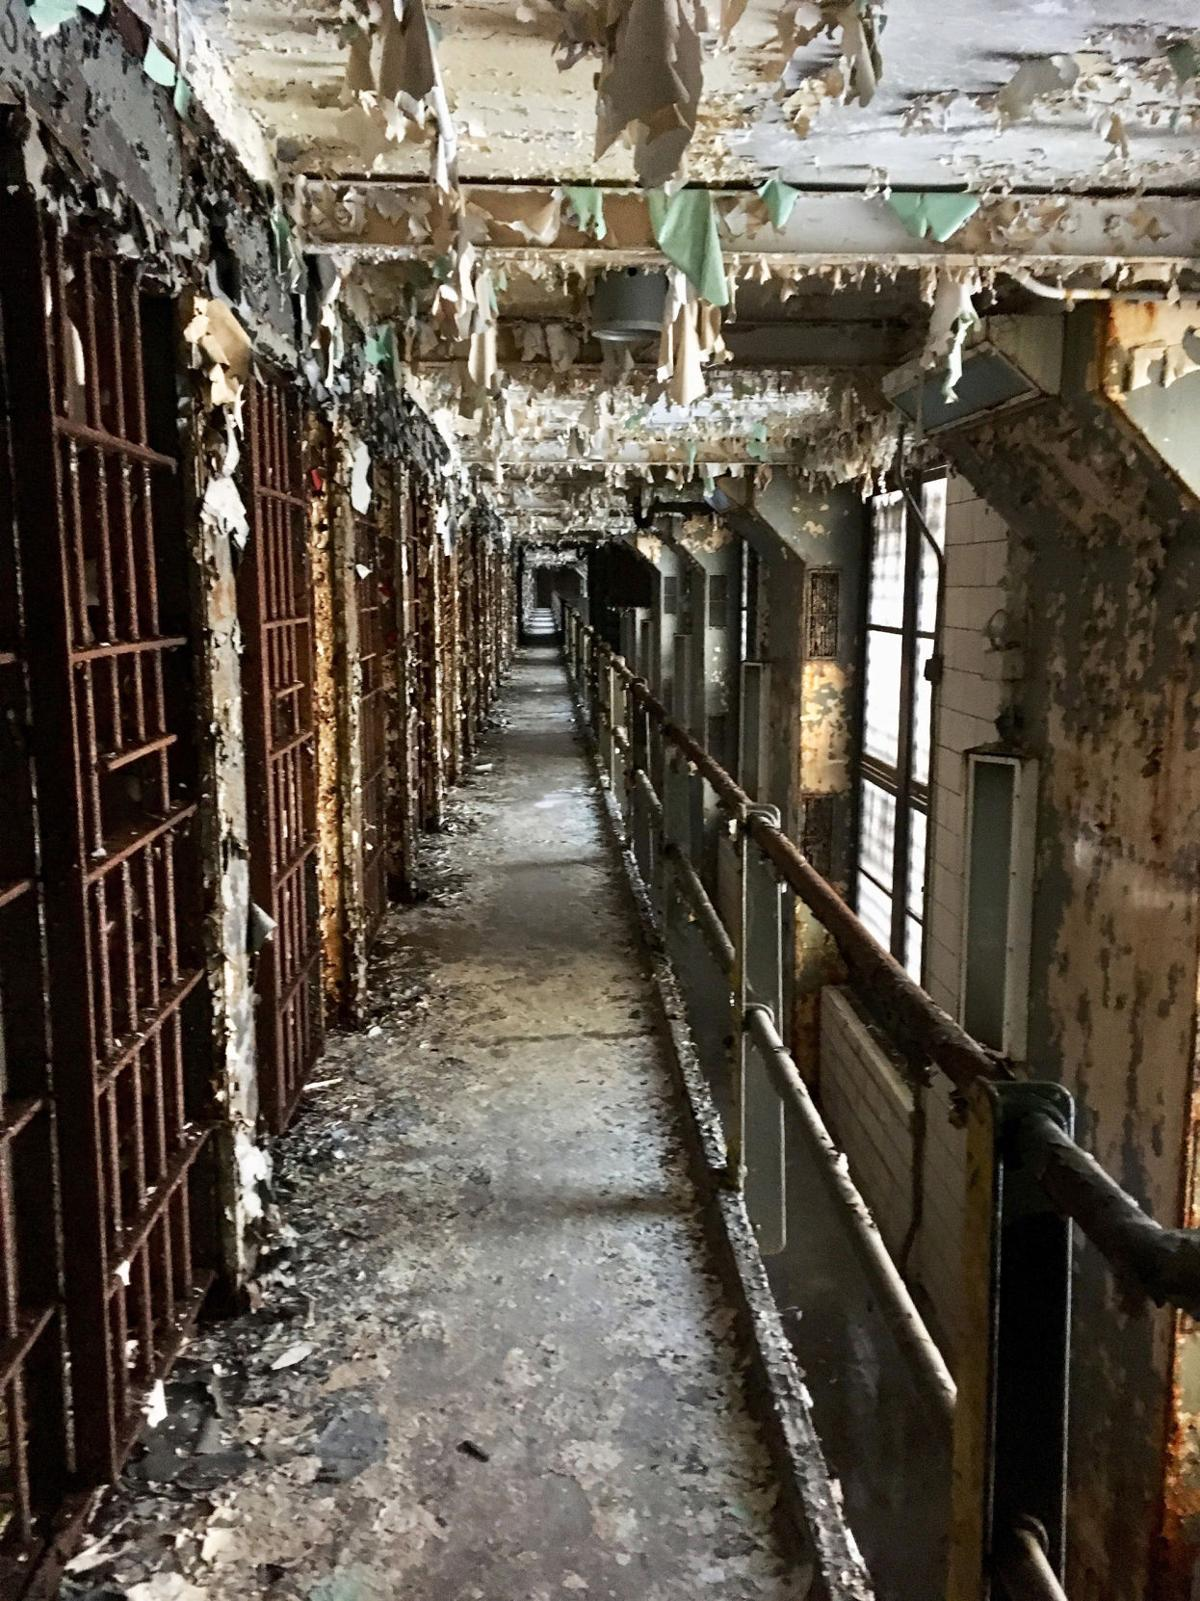 Garage Sales Joliet Il: Where's Jake's Cell? Old Joliet Prison finally Unlocks The